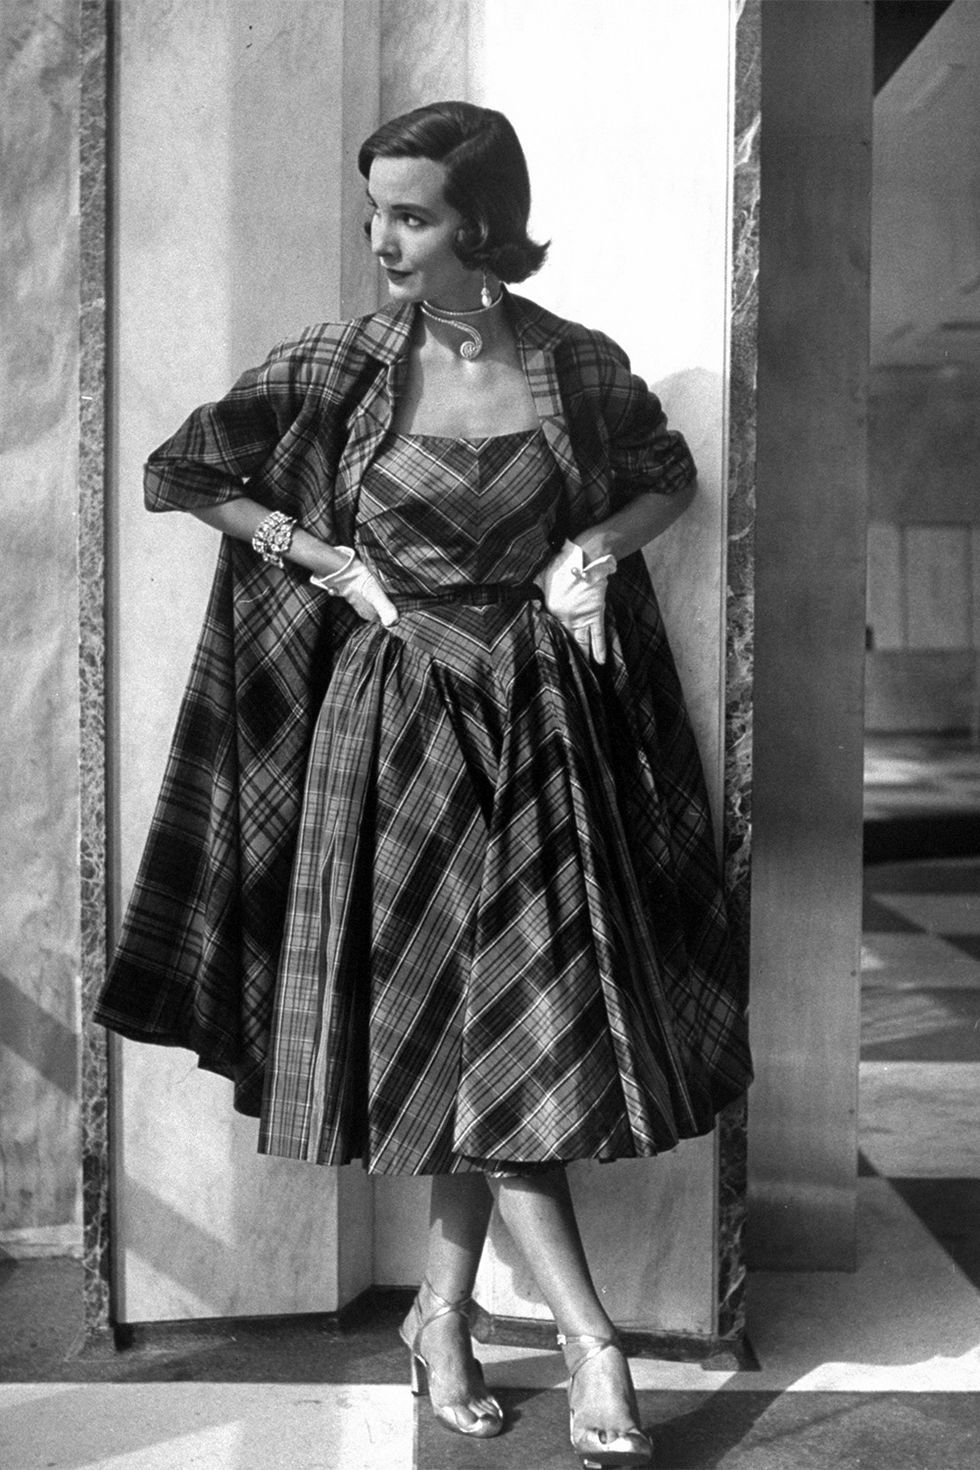 183ec3e6b2d8 The Best Fashion Photos From The 1950s | Vintage | Mode vintage ...